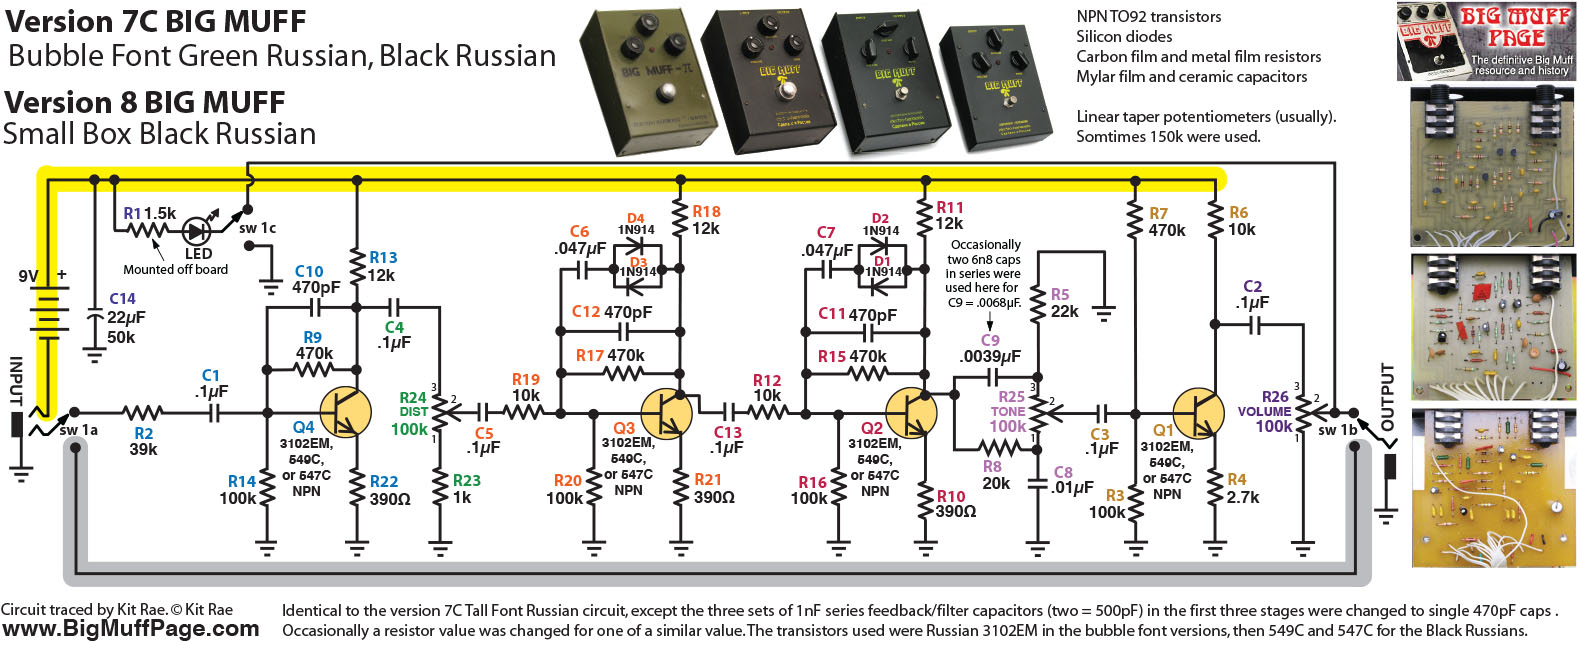 hight resolution of bubble font black russian big muff schematic